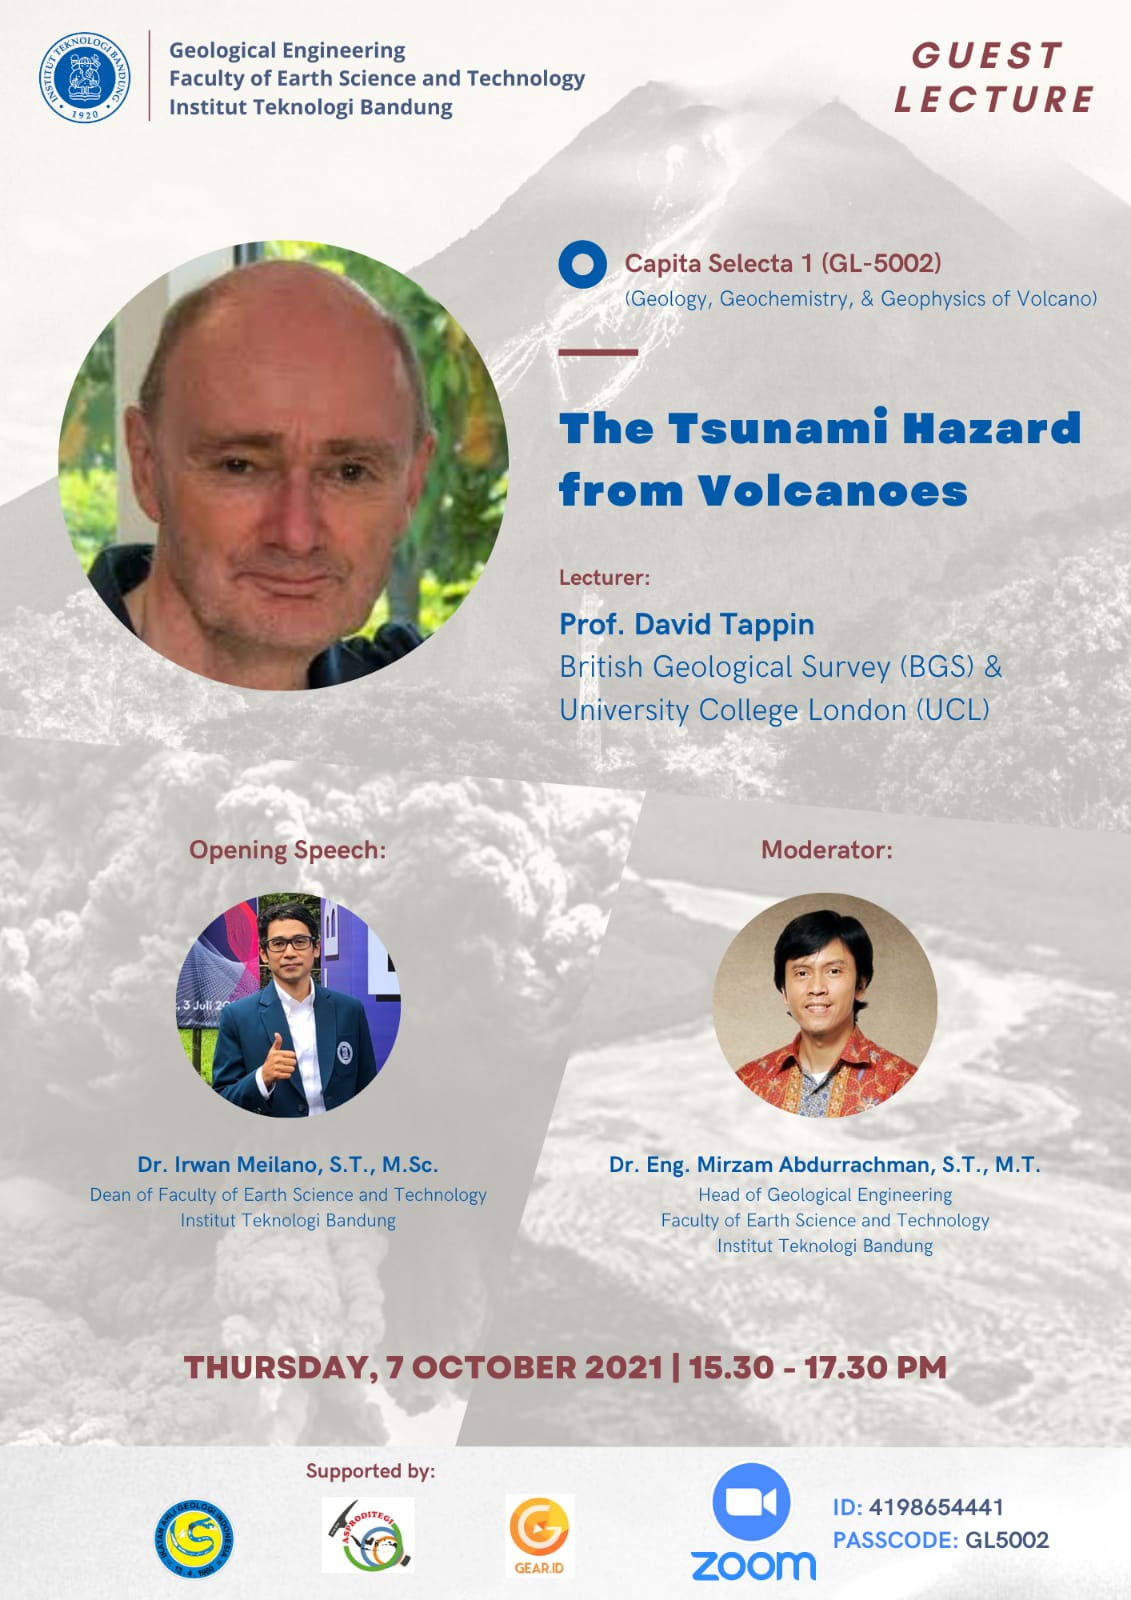 """Lecturer: Prof. David Tappin (British Geological Survey (BGS) & University College London (UCL)) Topic: """"The Tsunami Hazard from Volcanoes """""""